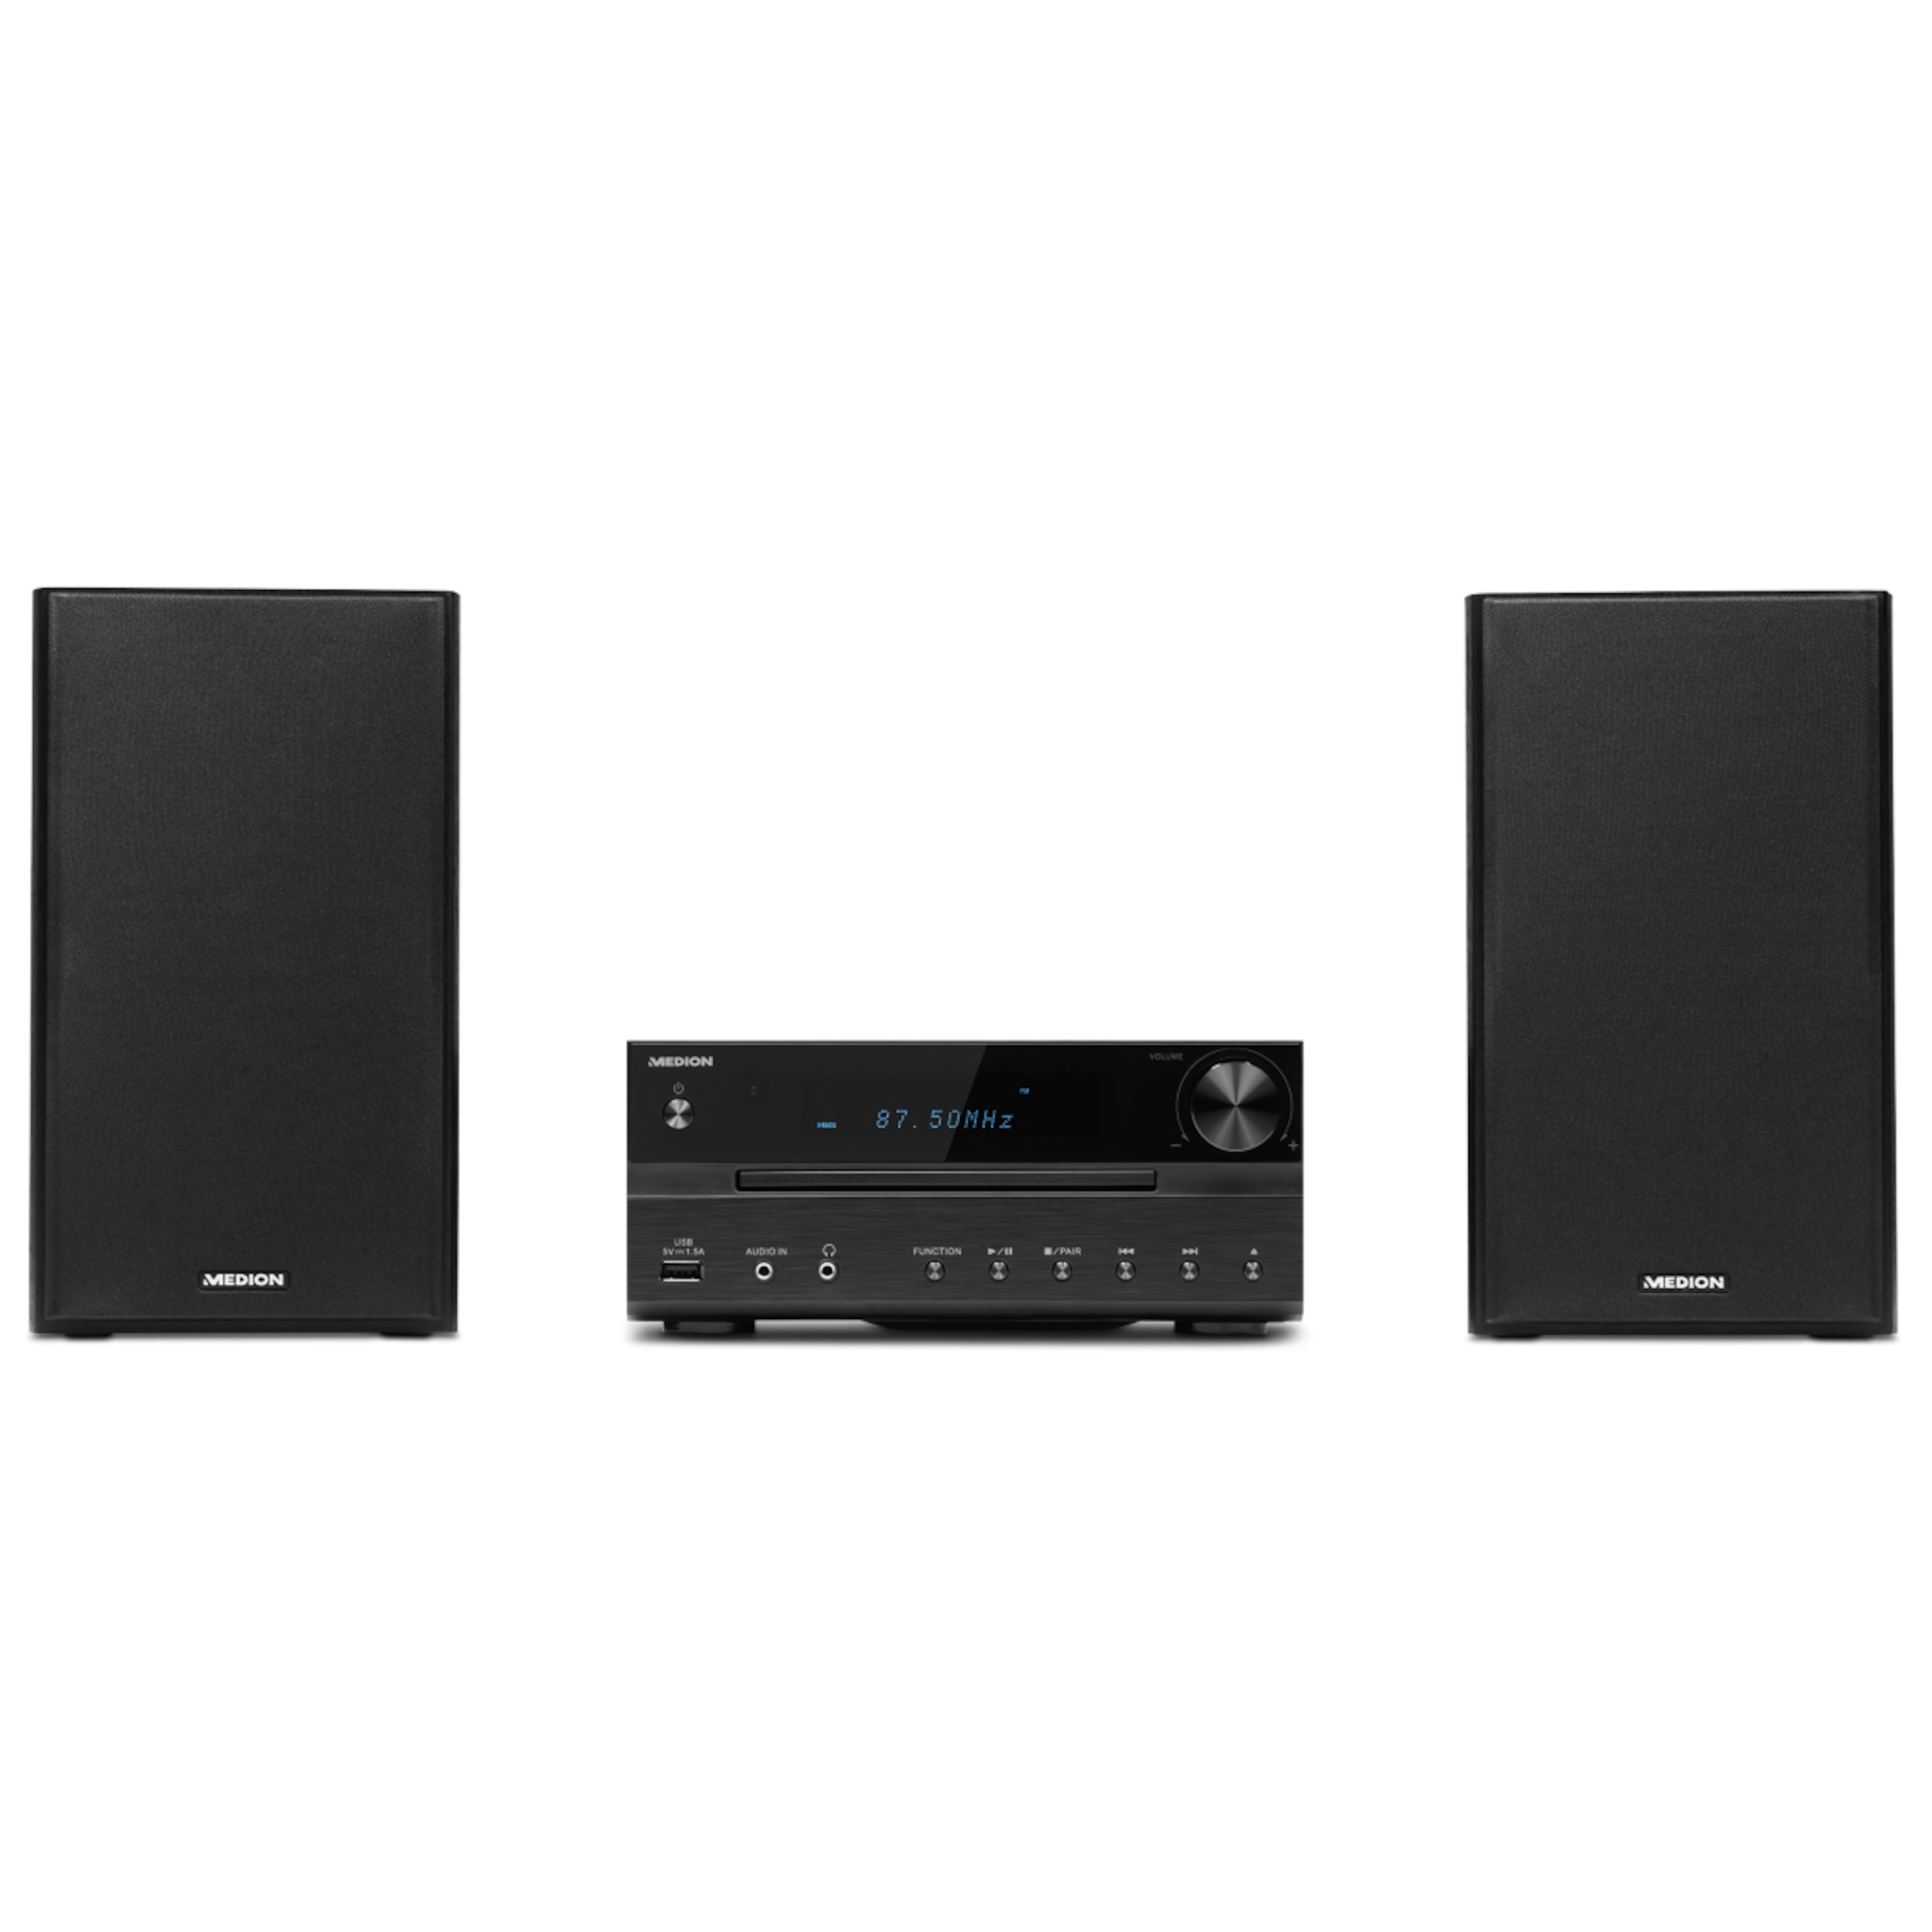 MEDION® LIFE® P64262 Micro-Audio-System mit CD-Player, DAB+, Bluetooth® 4.1, USB-Anschluss & -Ladefunktion, AUX, PLL-UKW Stereo-Radio, 2 x 15 W RMS (B-Ware)